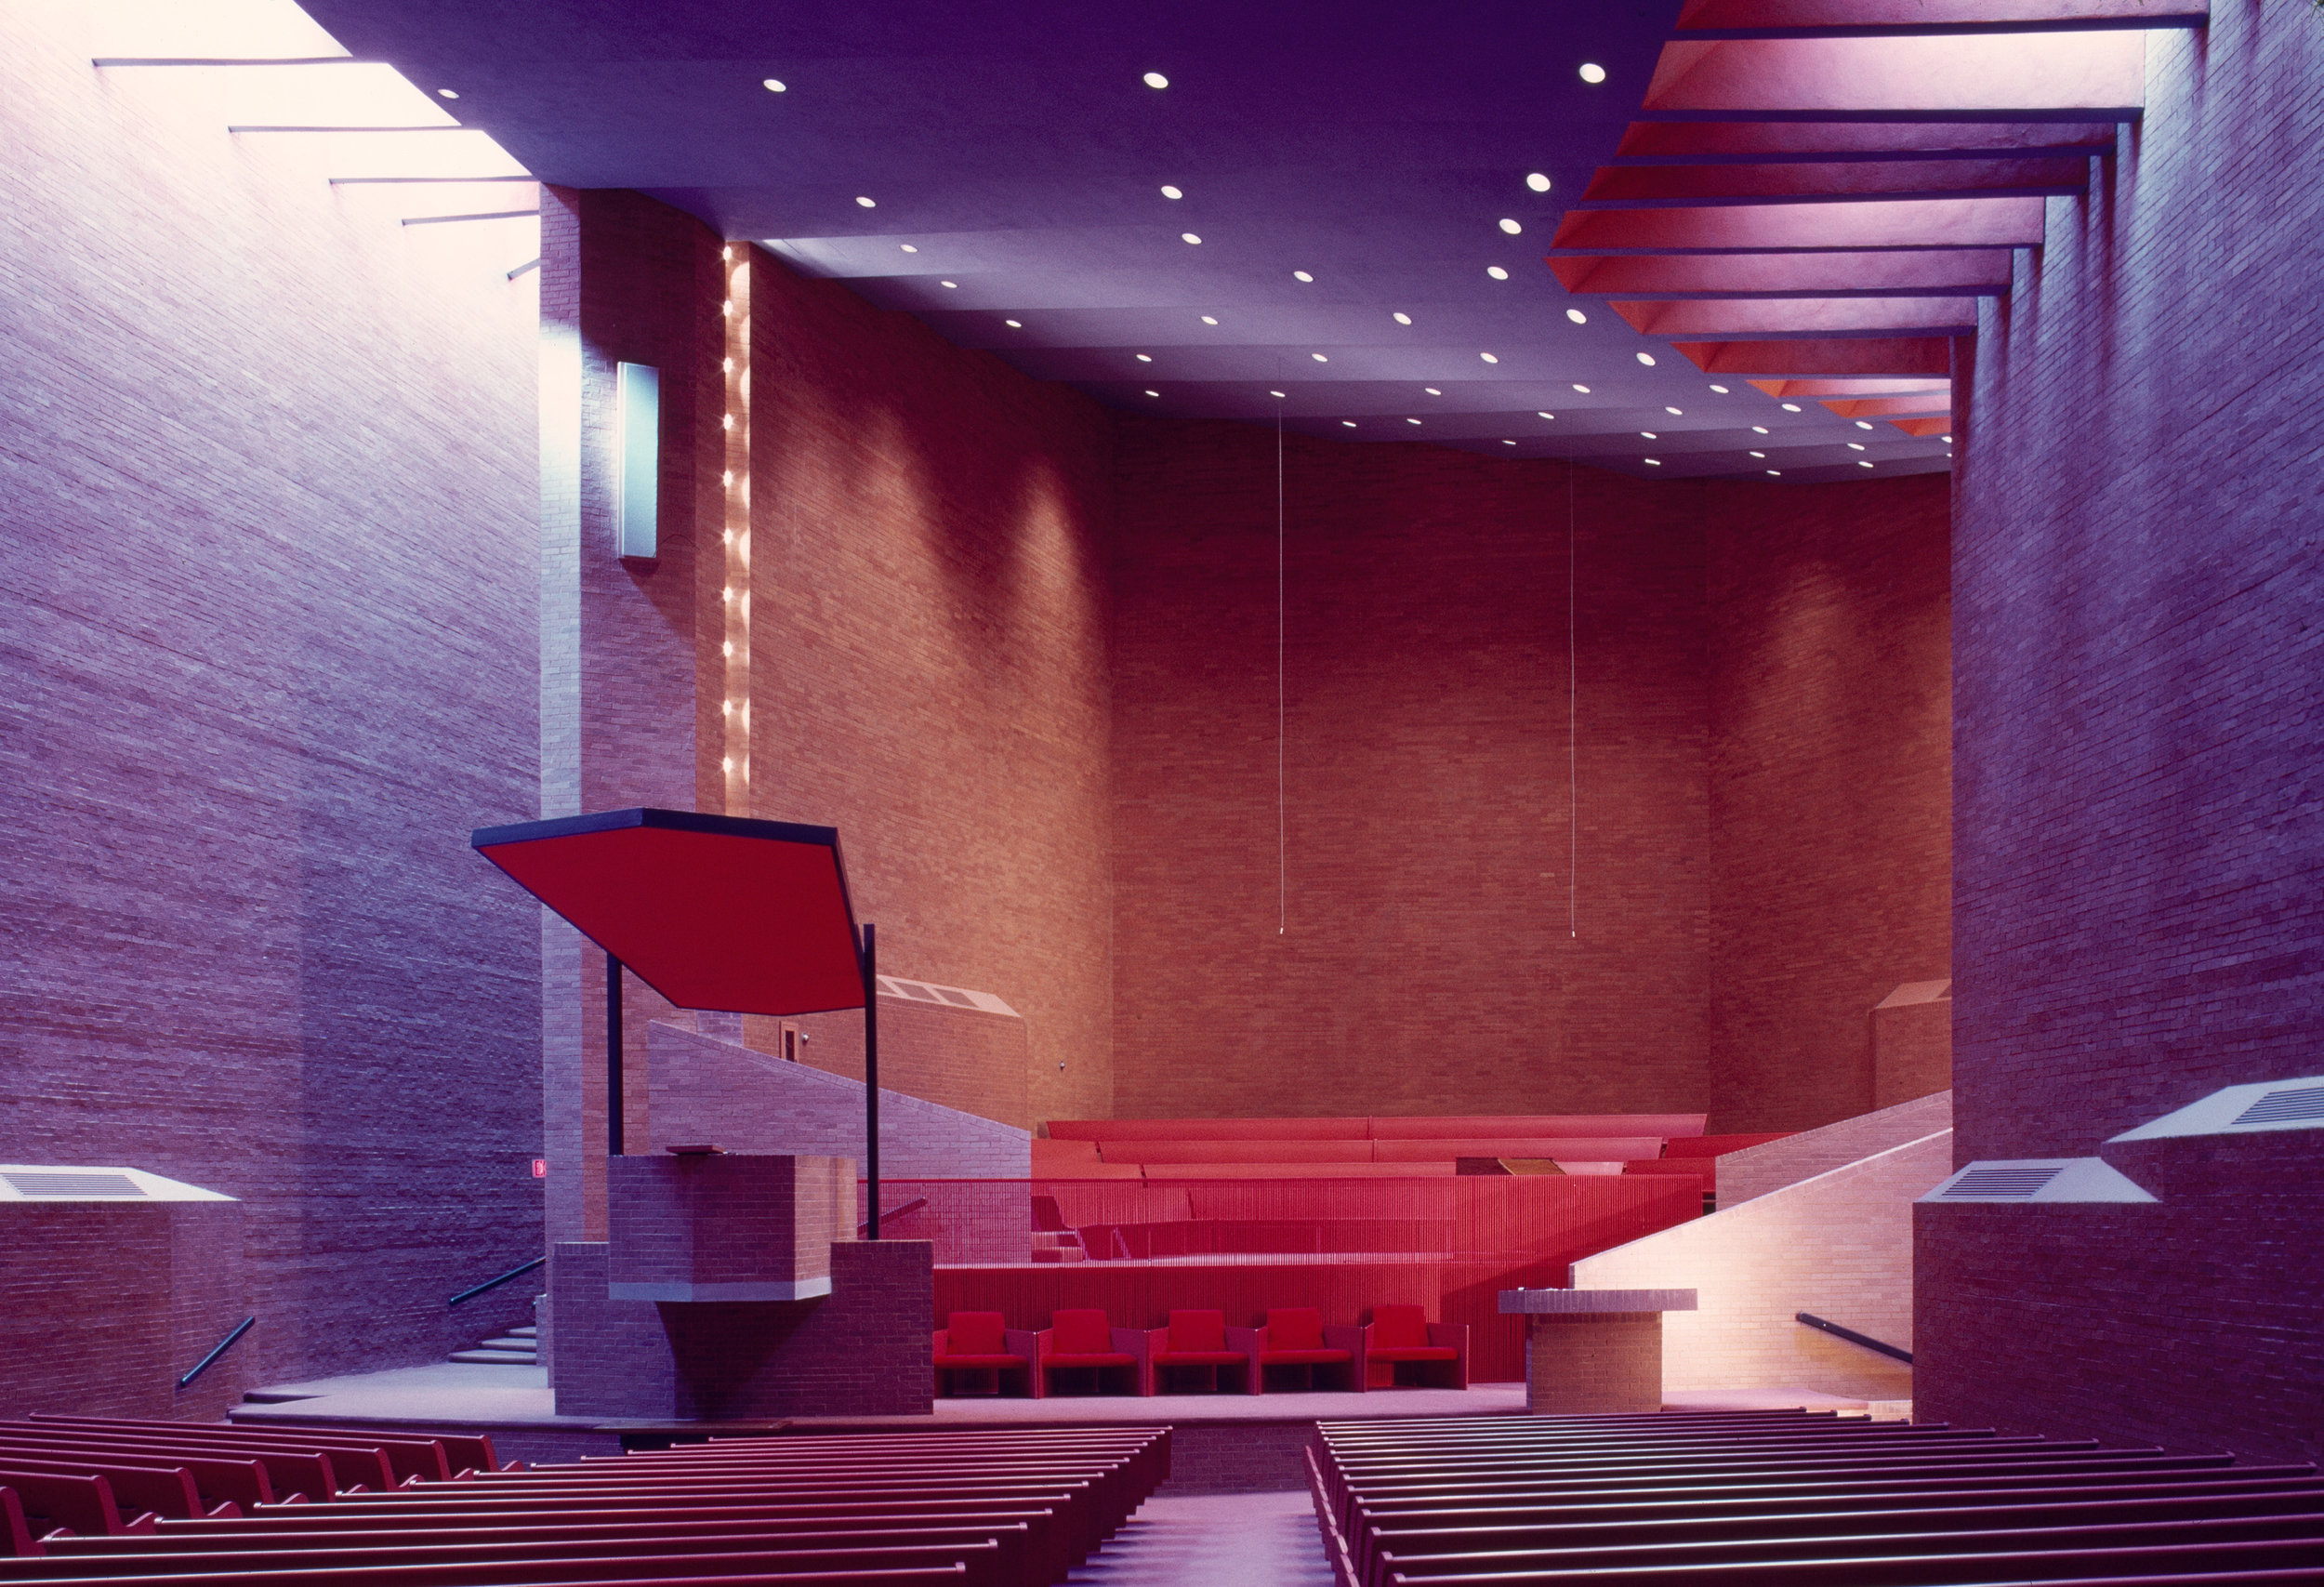 The interior of Paul Rudolph's Tuskegee Chapel, at the Tuskegee Institute in Alabama. It was constructed between 1967 and 1969, and is one of his half-dozen most well-known designs. Photo:G. E. Kidder Smith Image Collection, MIT Libraries